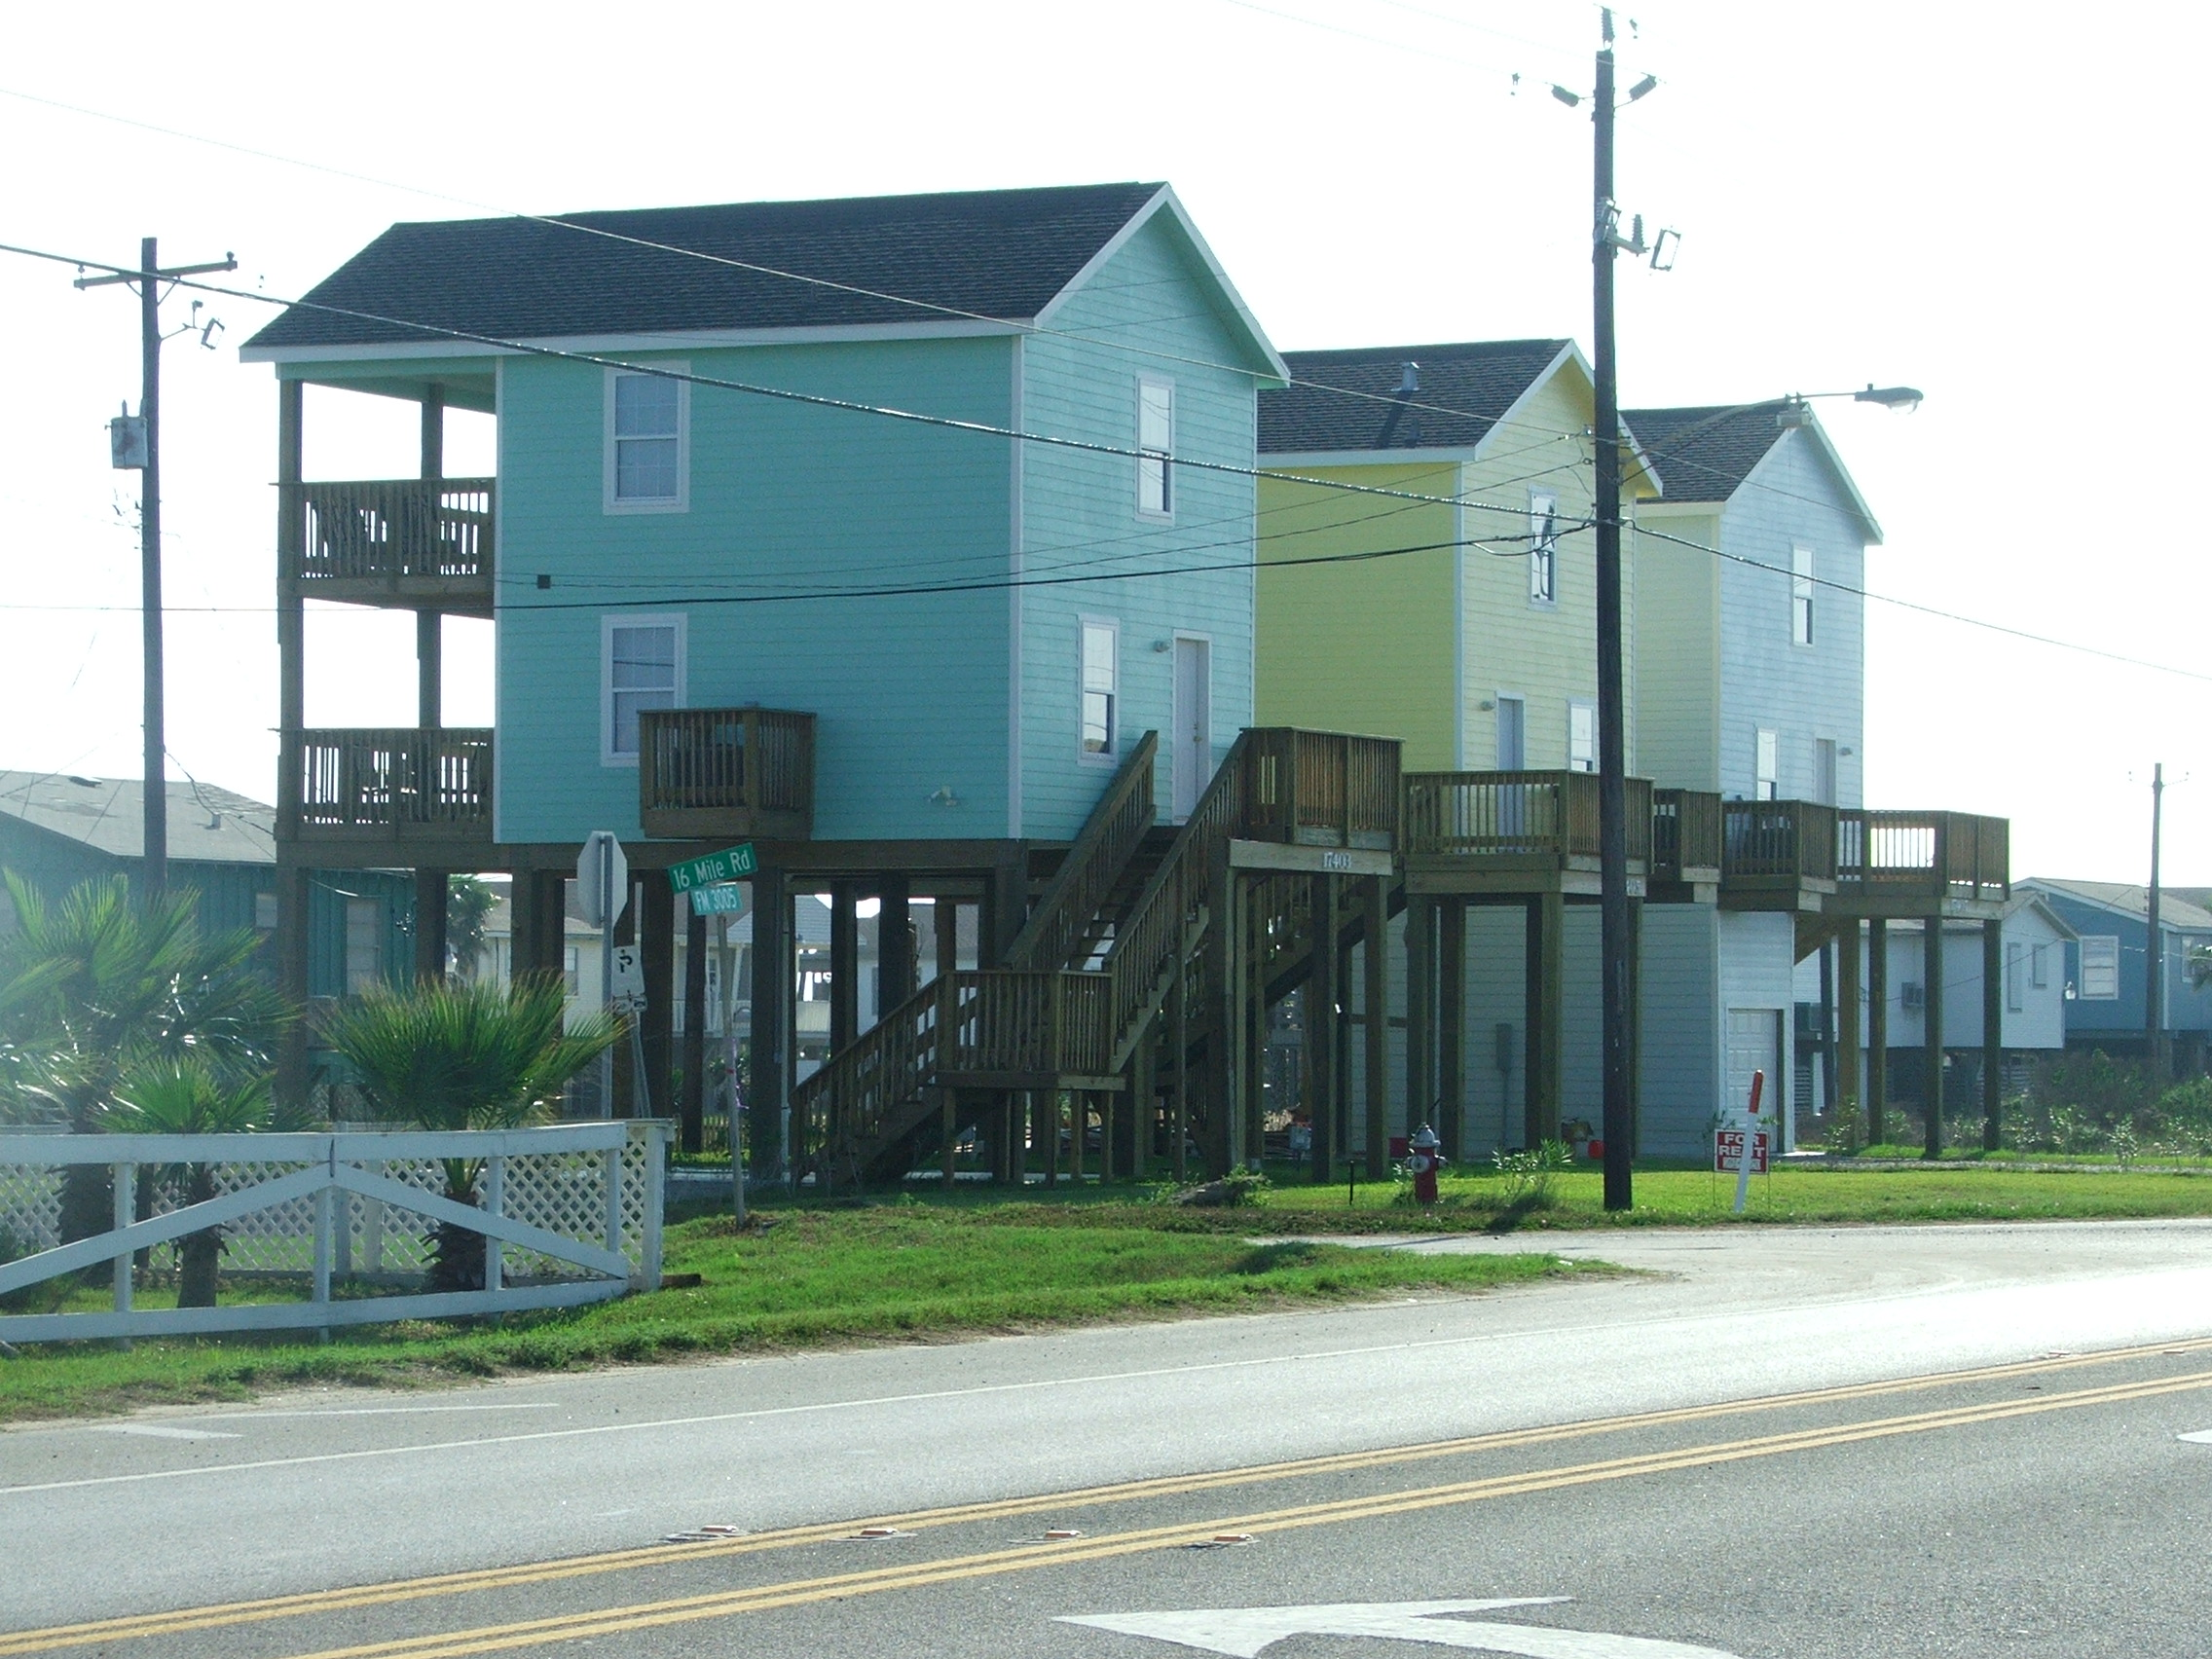 galveston beachhouse rental. rent a beach house, Beach House/